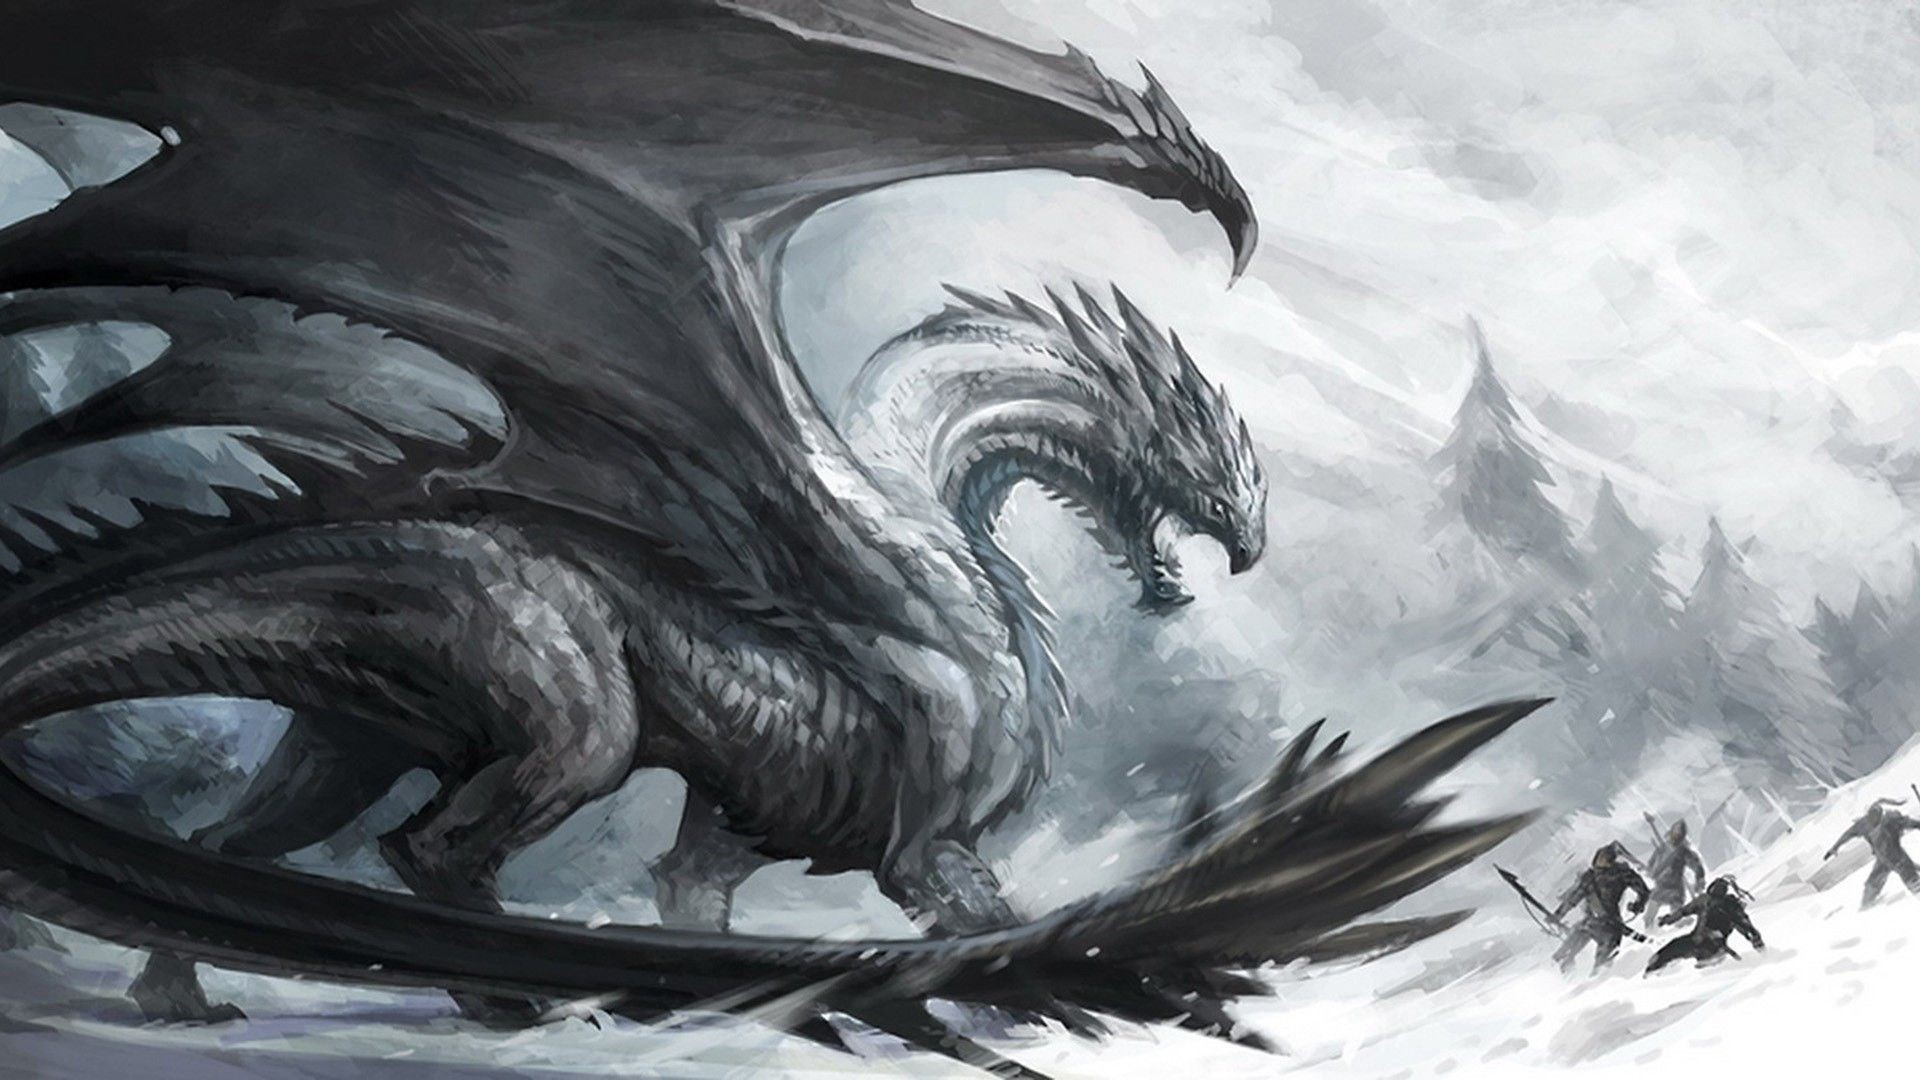 Black Dragon Wallpapers (65+ images)